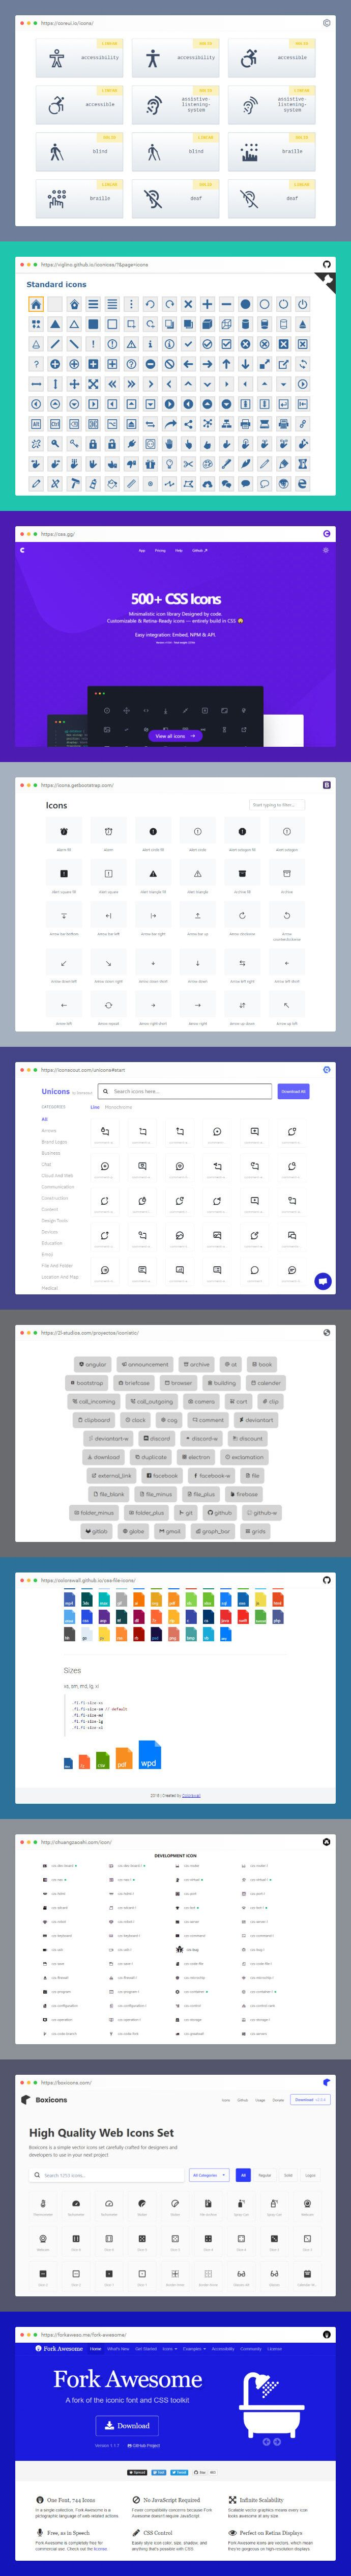 10 Awesome CSS & Javascript Icon Libraries 2020 Web